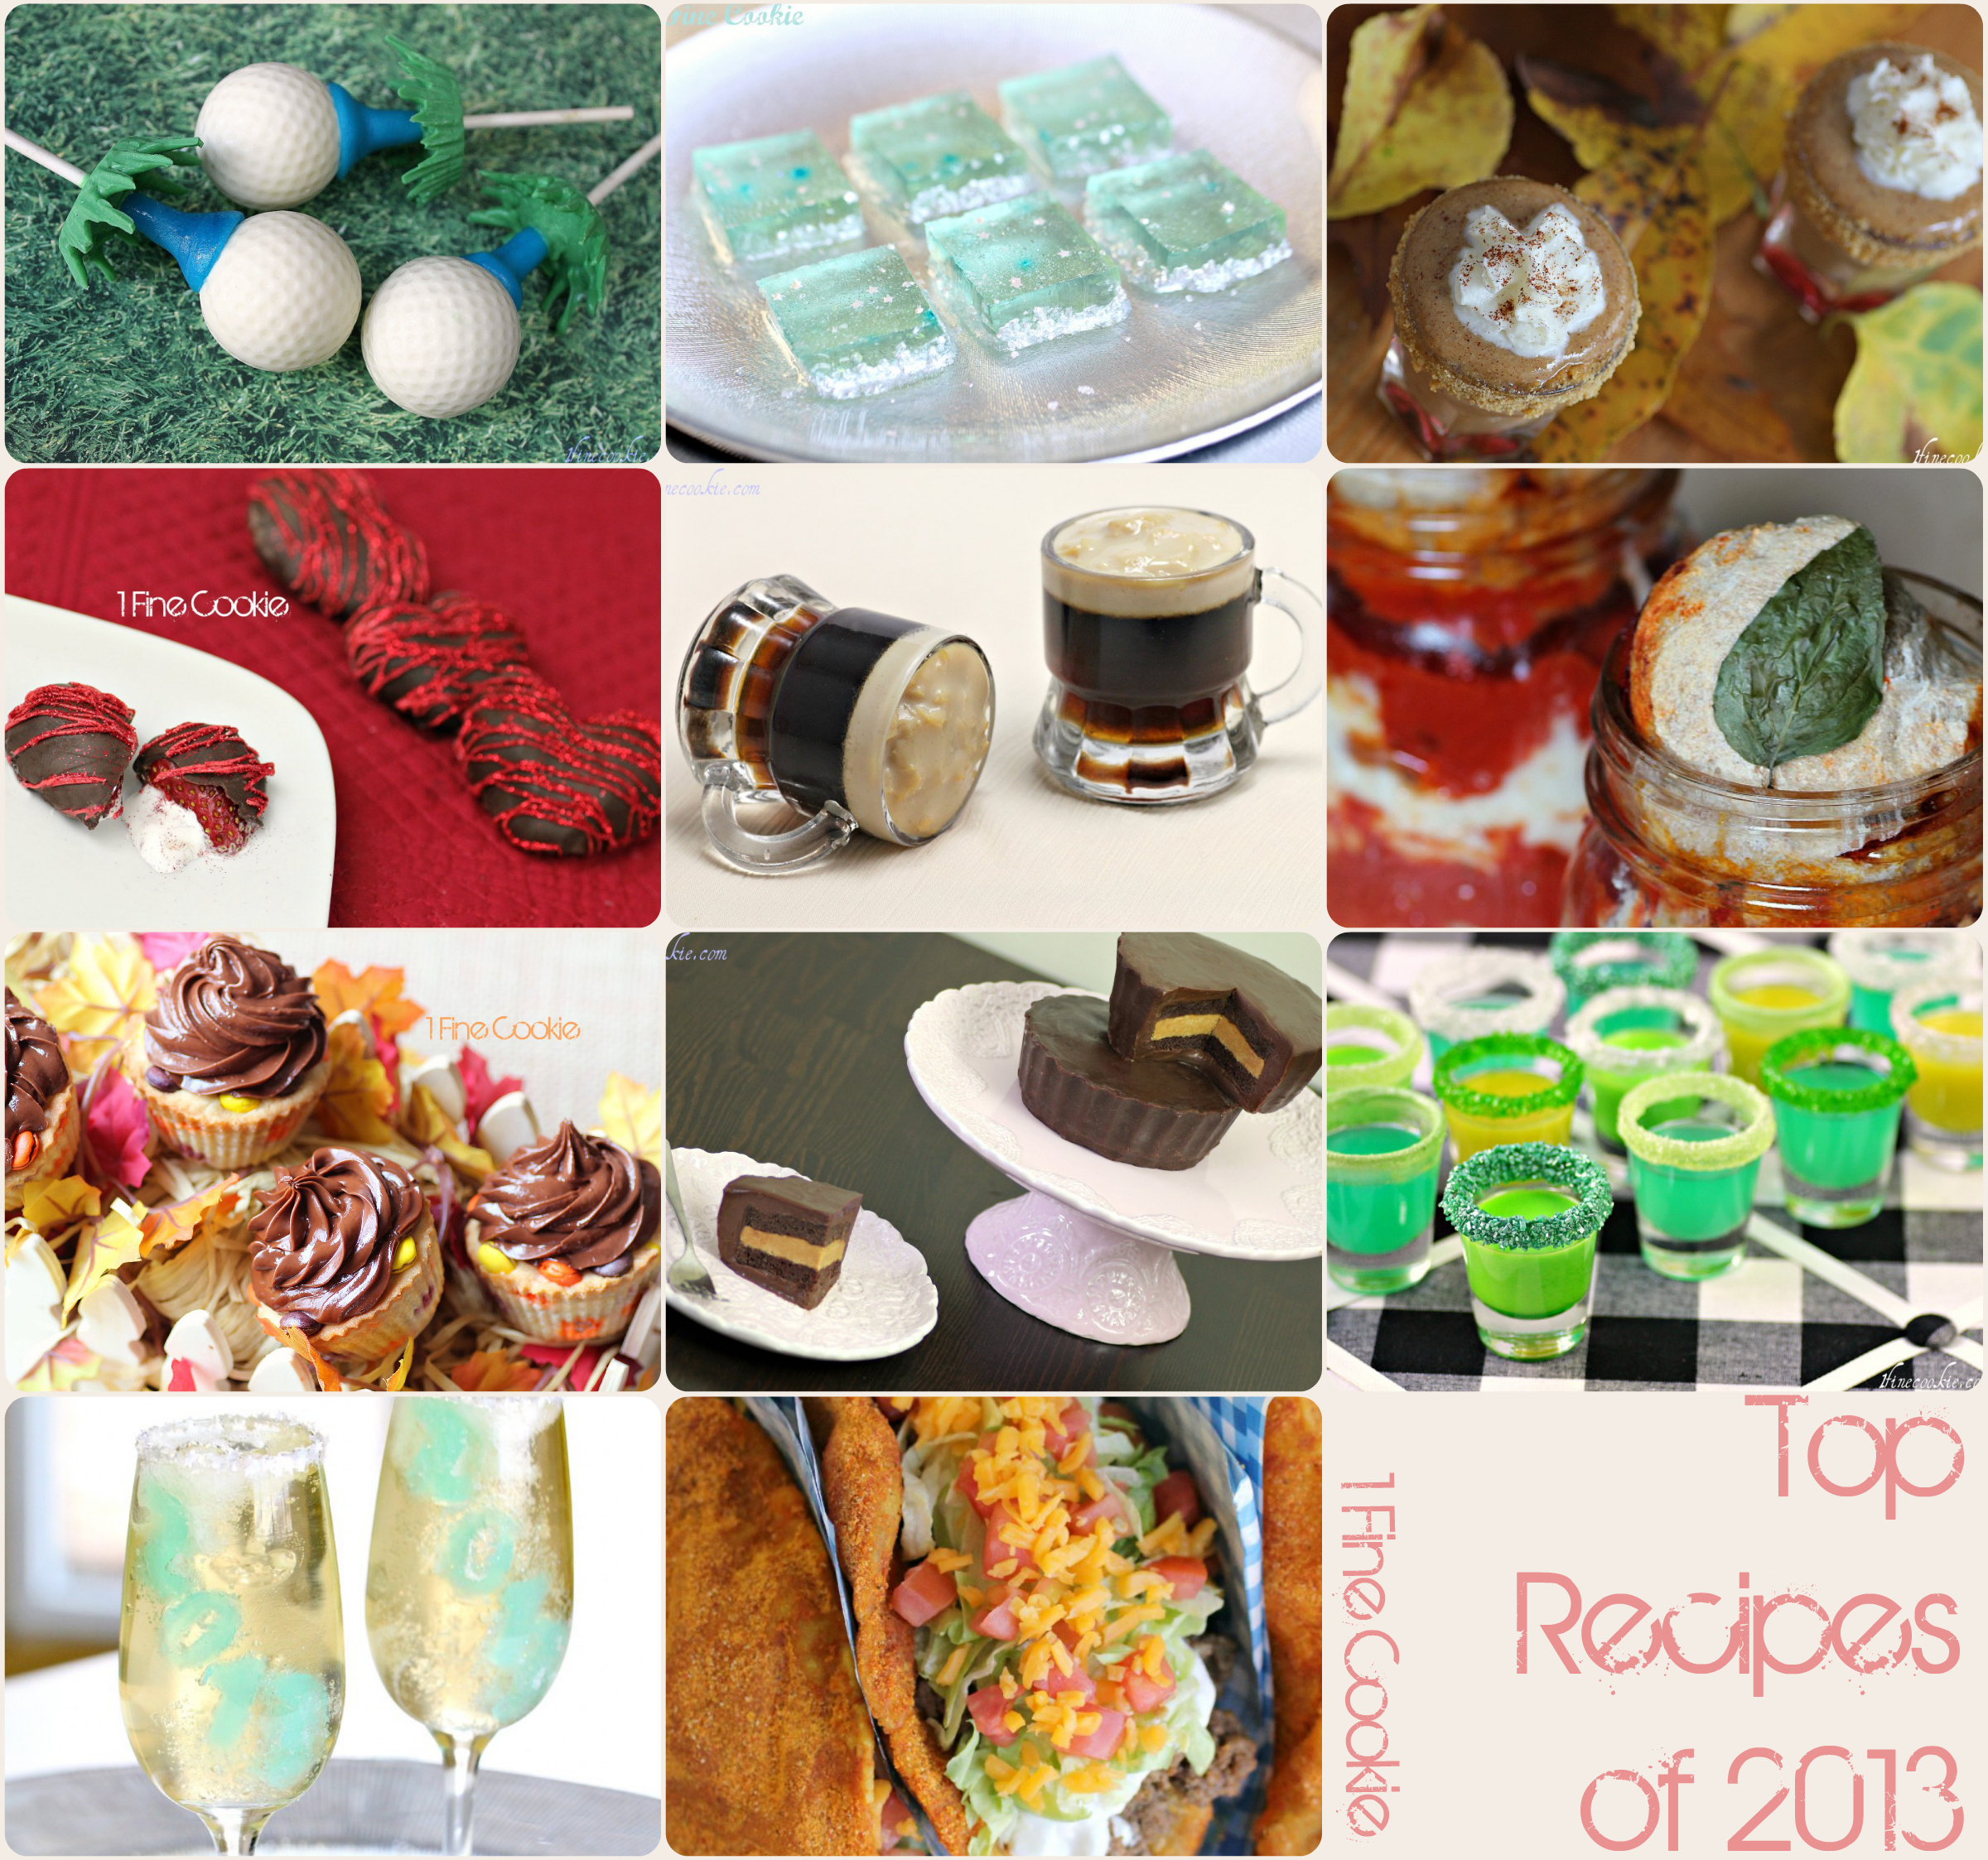 Most Popular Recipes Of 2013 1 Fine Cookie